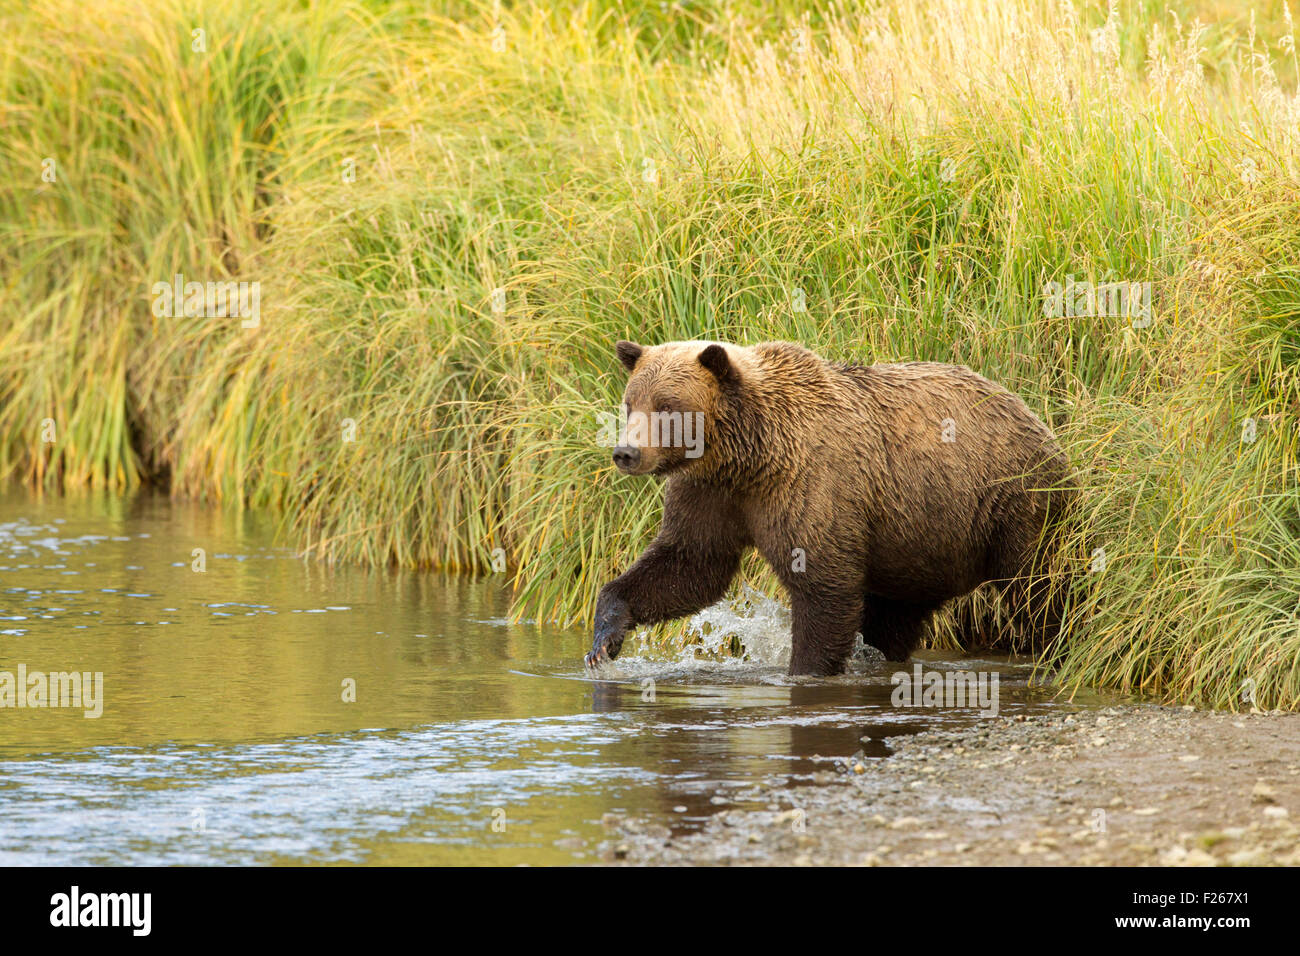 Grizzly Bear Entering Creek - Stock Image